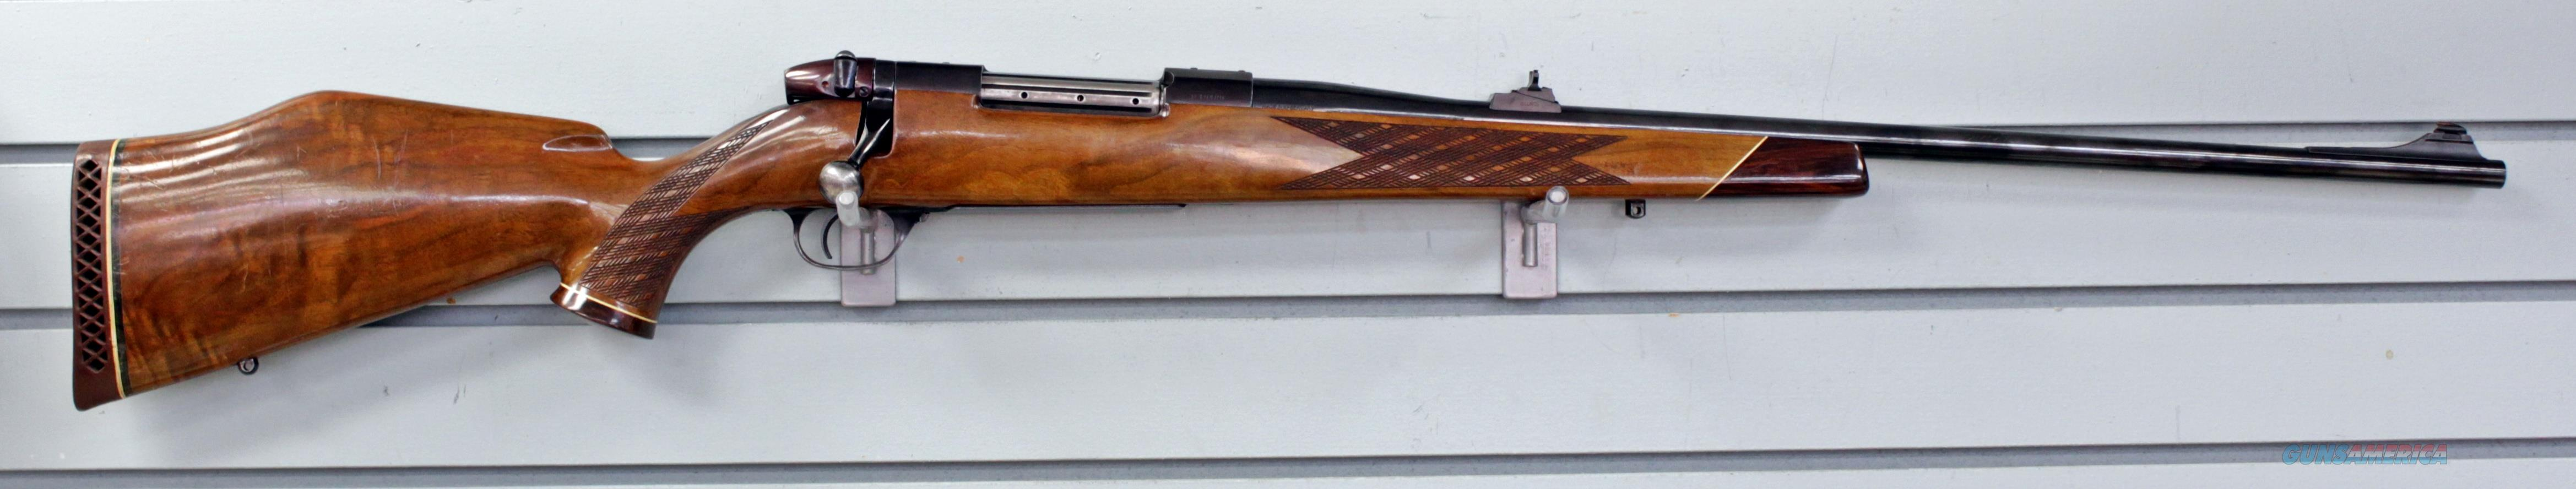 WEATHERBY MK V GERMAN RIFLE  Guns > Rifles > Weatherby Rifles > Sporting